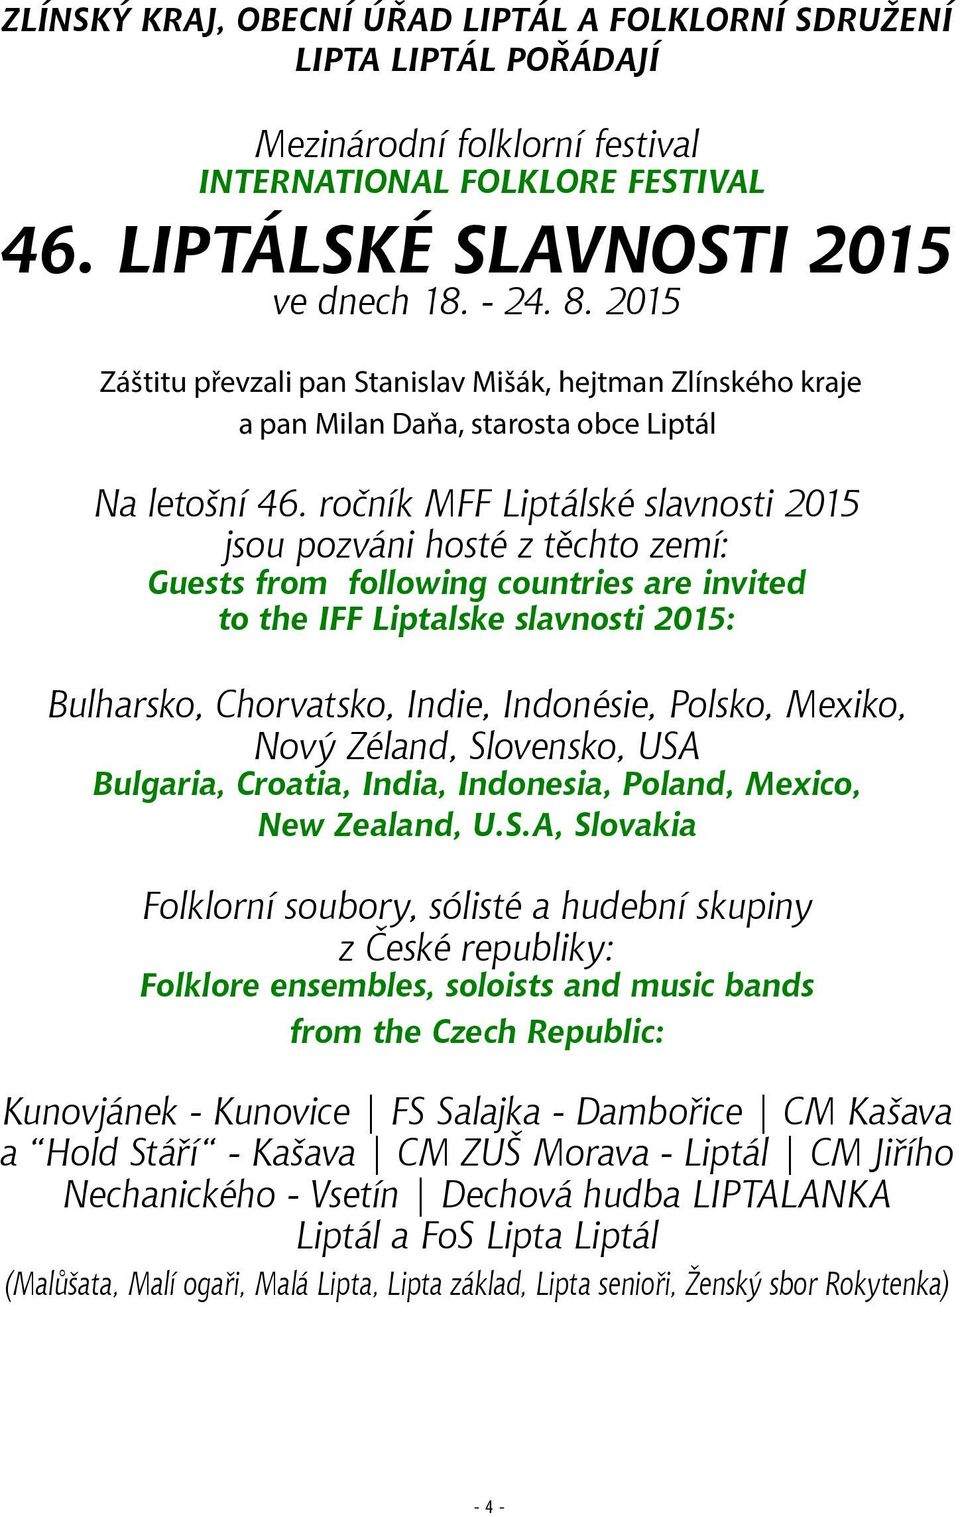 ročník MFF Liptálské slavnosti 2015 jsou pozváni hosté z těchto zemí: Guests from following countries are invited to the IFF Liptalske slavnosti 2015: Bulharsko, Chorvatsko, Indie, Indonésie, Polsko,